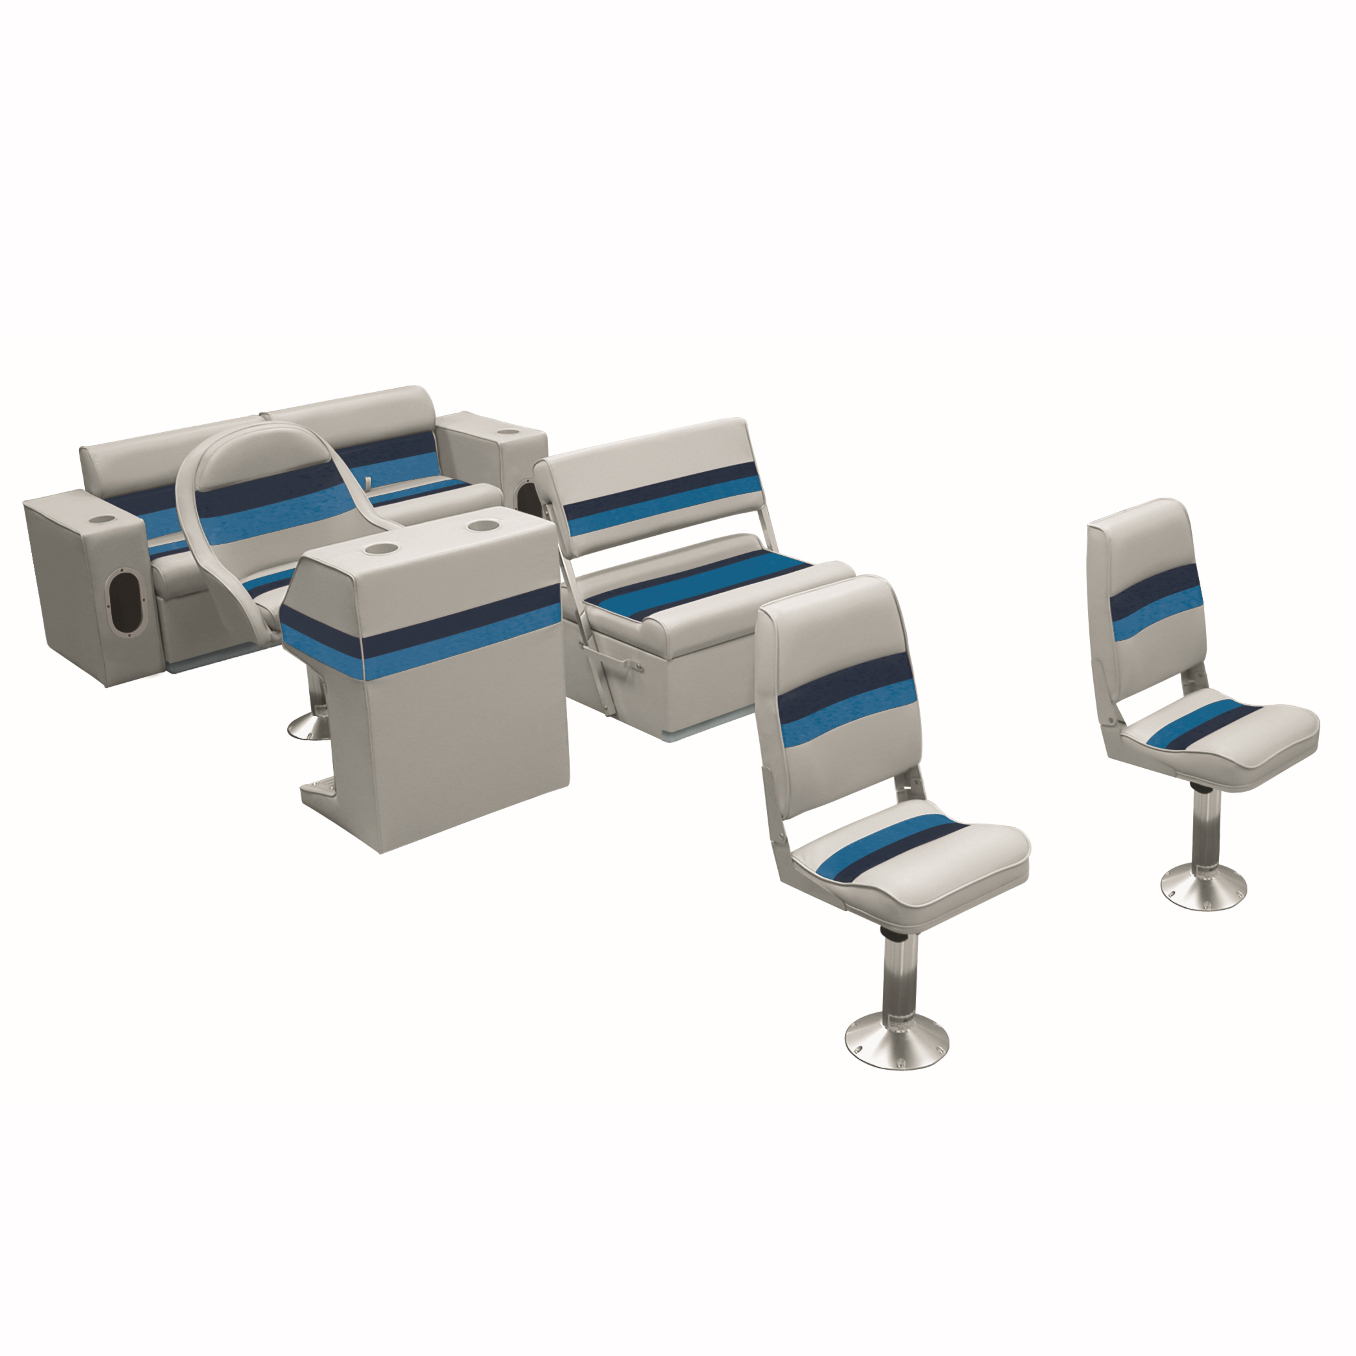 Deluxe Pontoon Furniture w/Toe Kick Base - Fishing Package, Gray/Navy/Blue